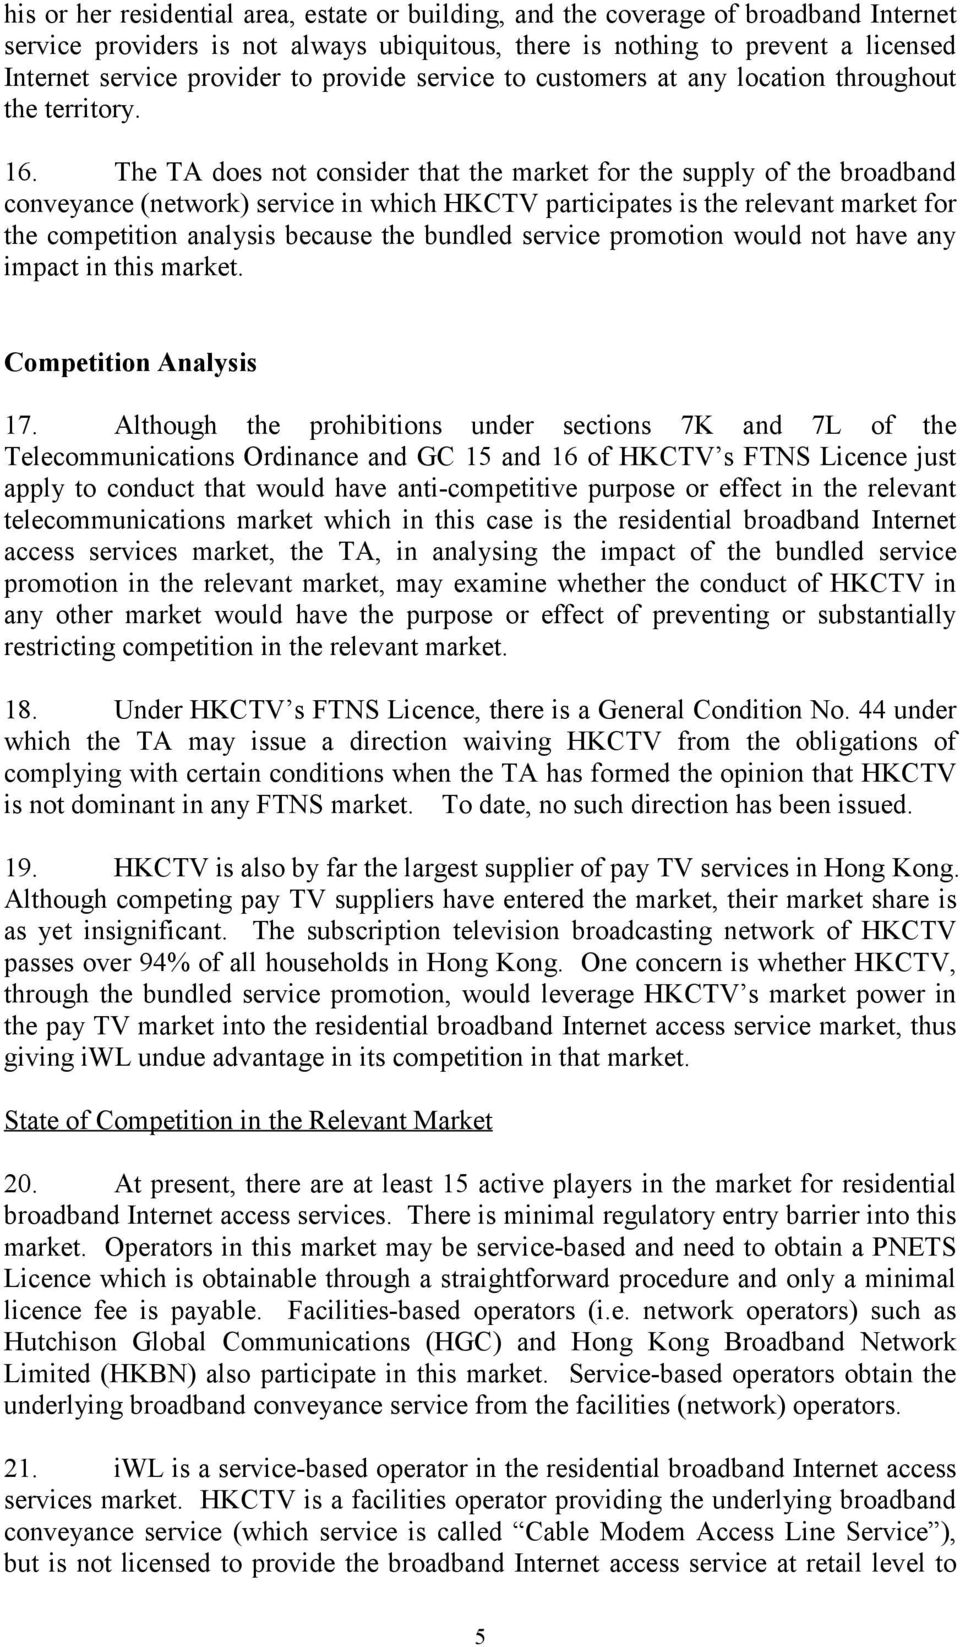 The TA does not consider that the market for the supply of the broadband conveyance (network) service in which HKCTV participates is the relevant market for the competition analysis because the